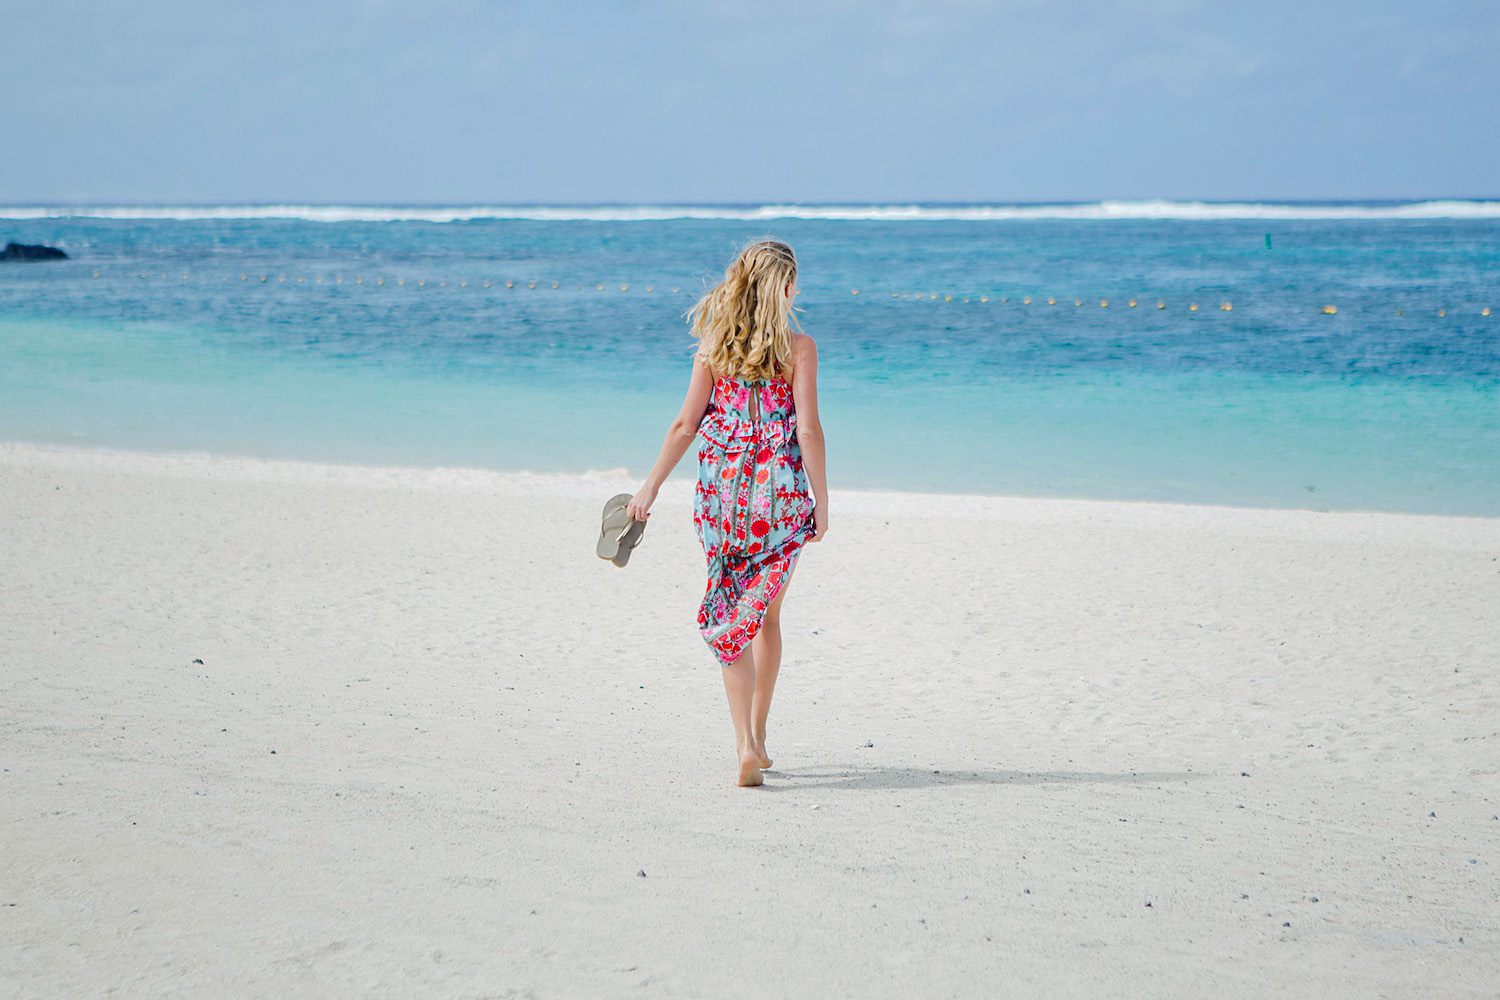 Long Beach – A Sun Resort Mauritius <br><em>where to stay on Mauritius</em>